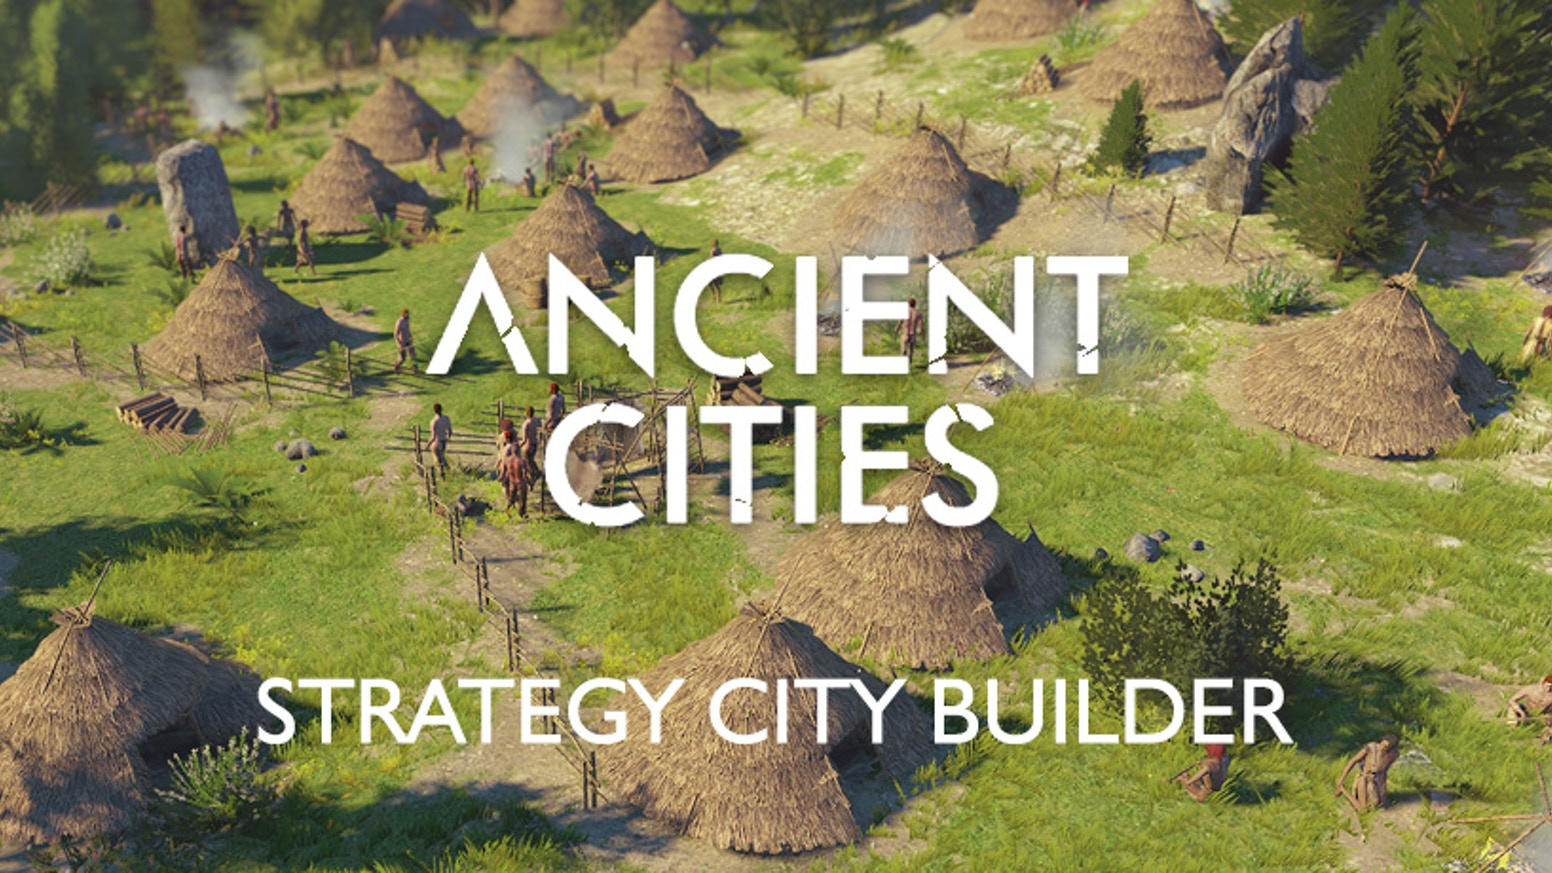 Ancient Cities Guide. How to make a rope?